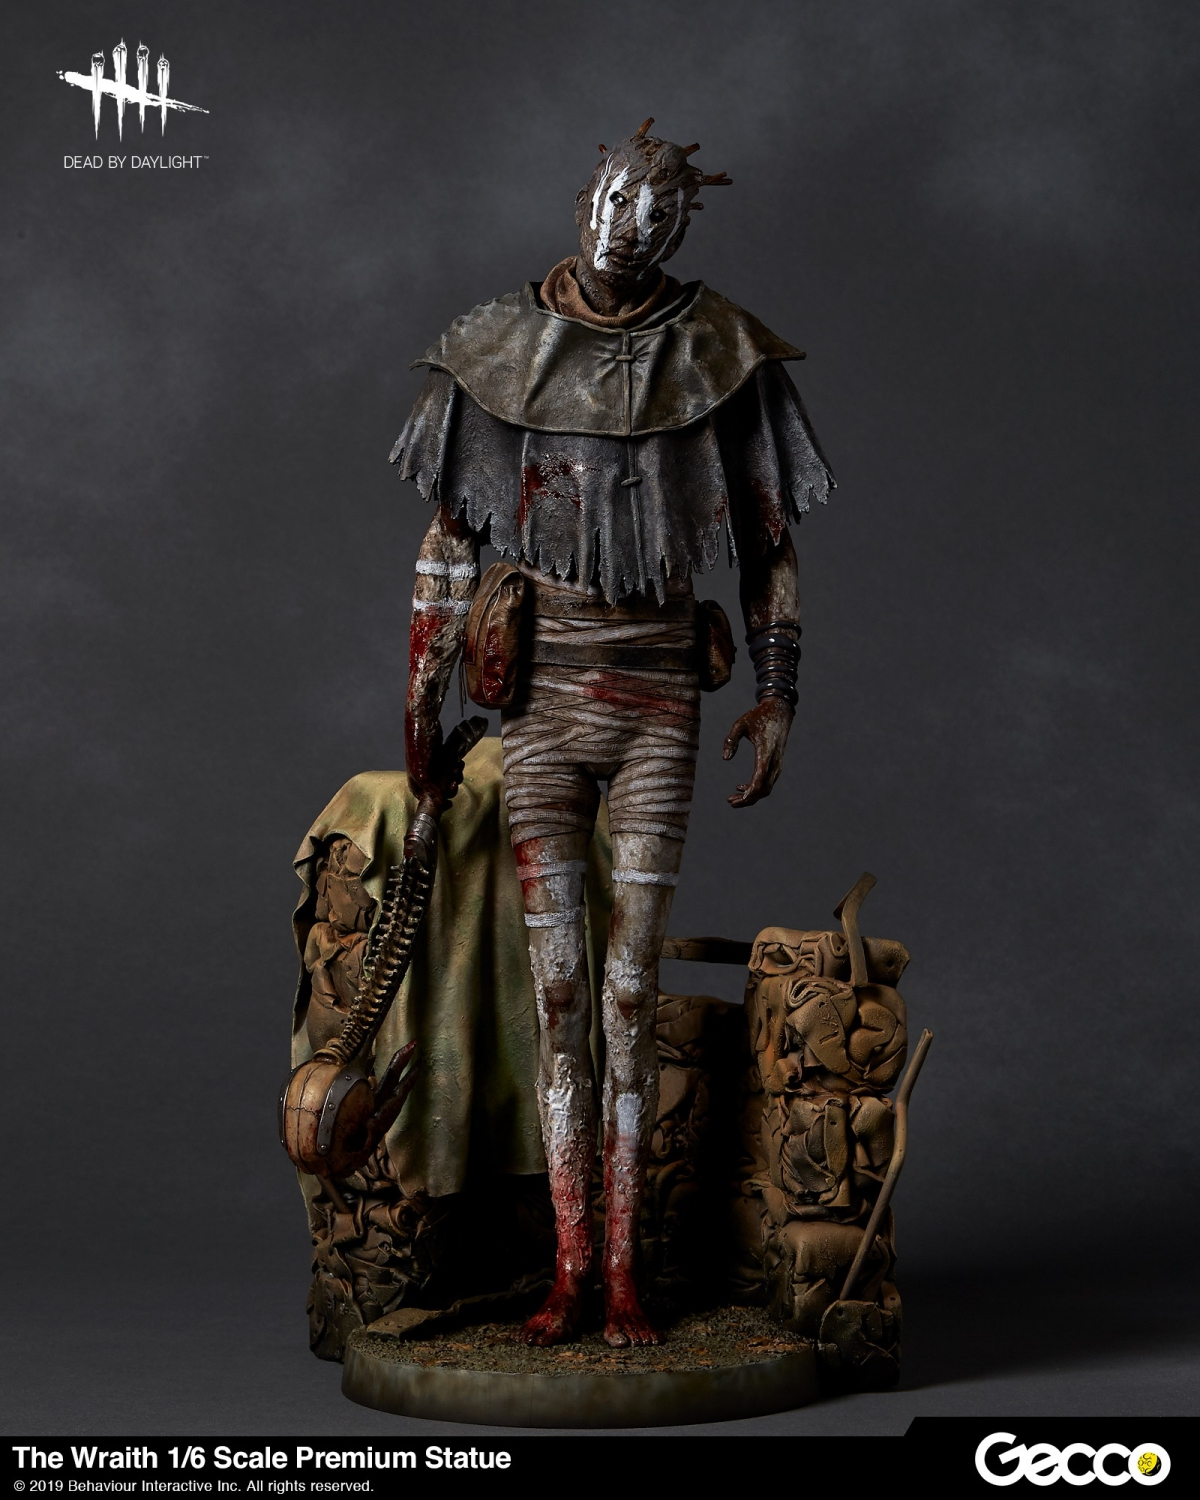 Dead by Daylight The Wraith Statue